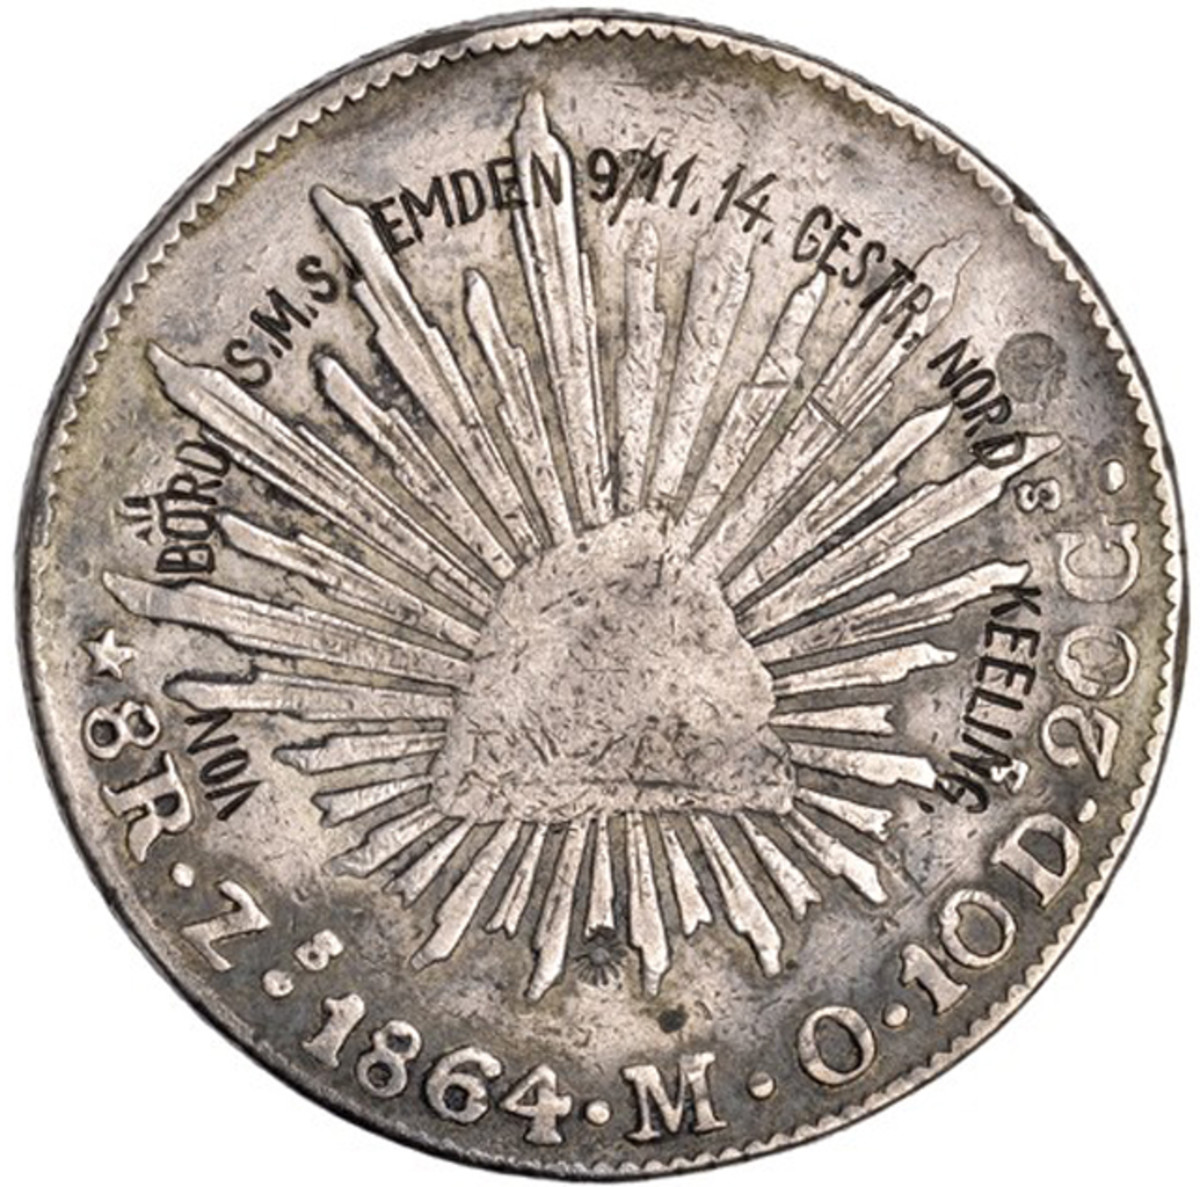 Engraved Mexican peso from the SMS Emden.